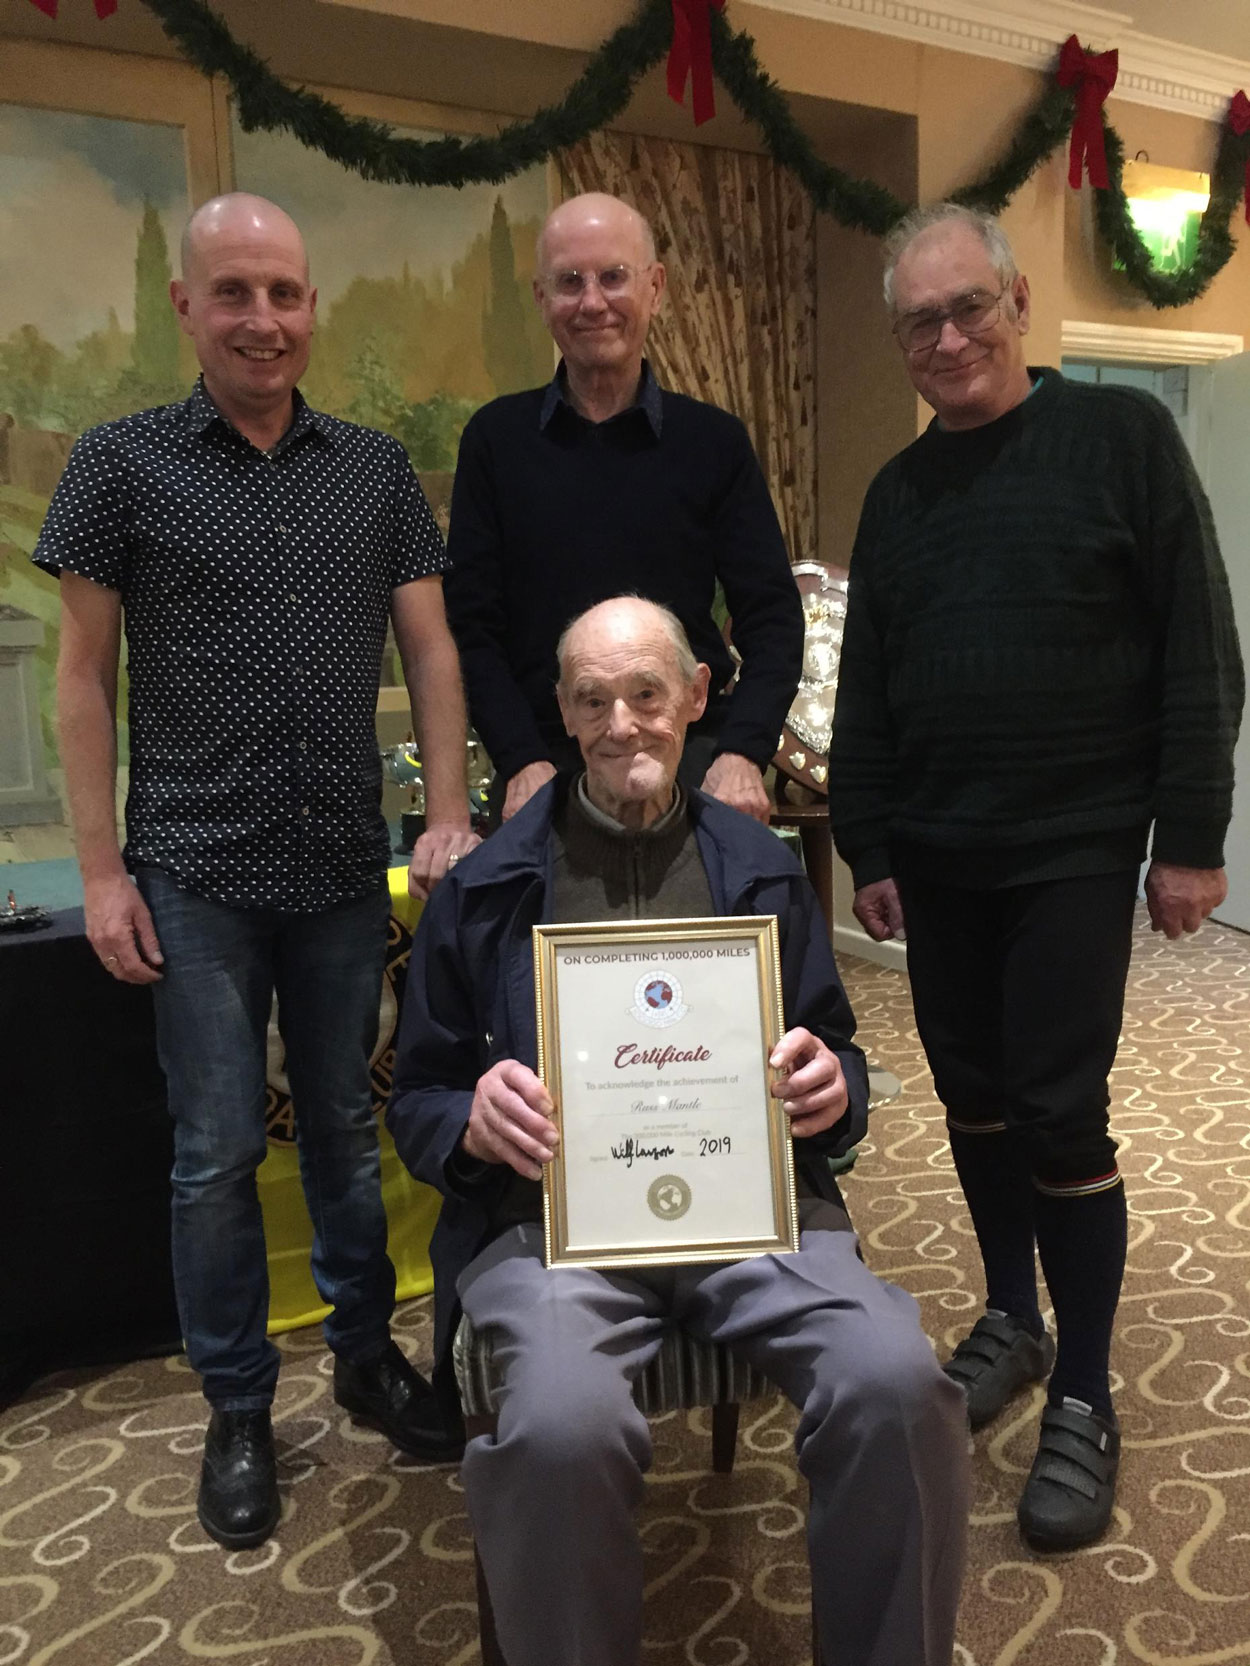 Russ Mantle and his 1,000,000 Mile certificate with members Paul Whitehead, Derek Hayday, and Malcolm Waters